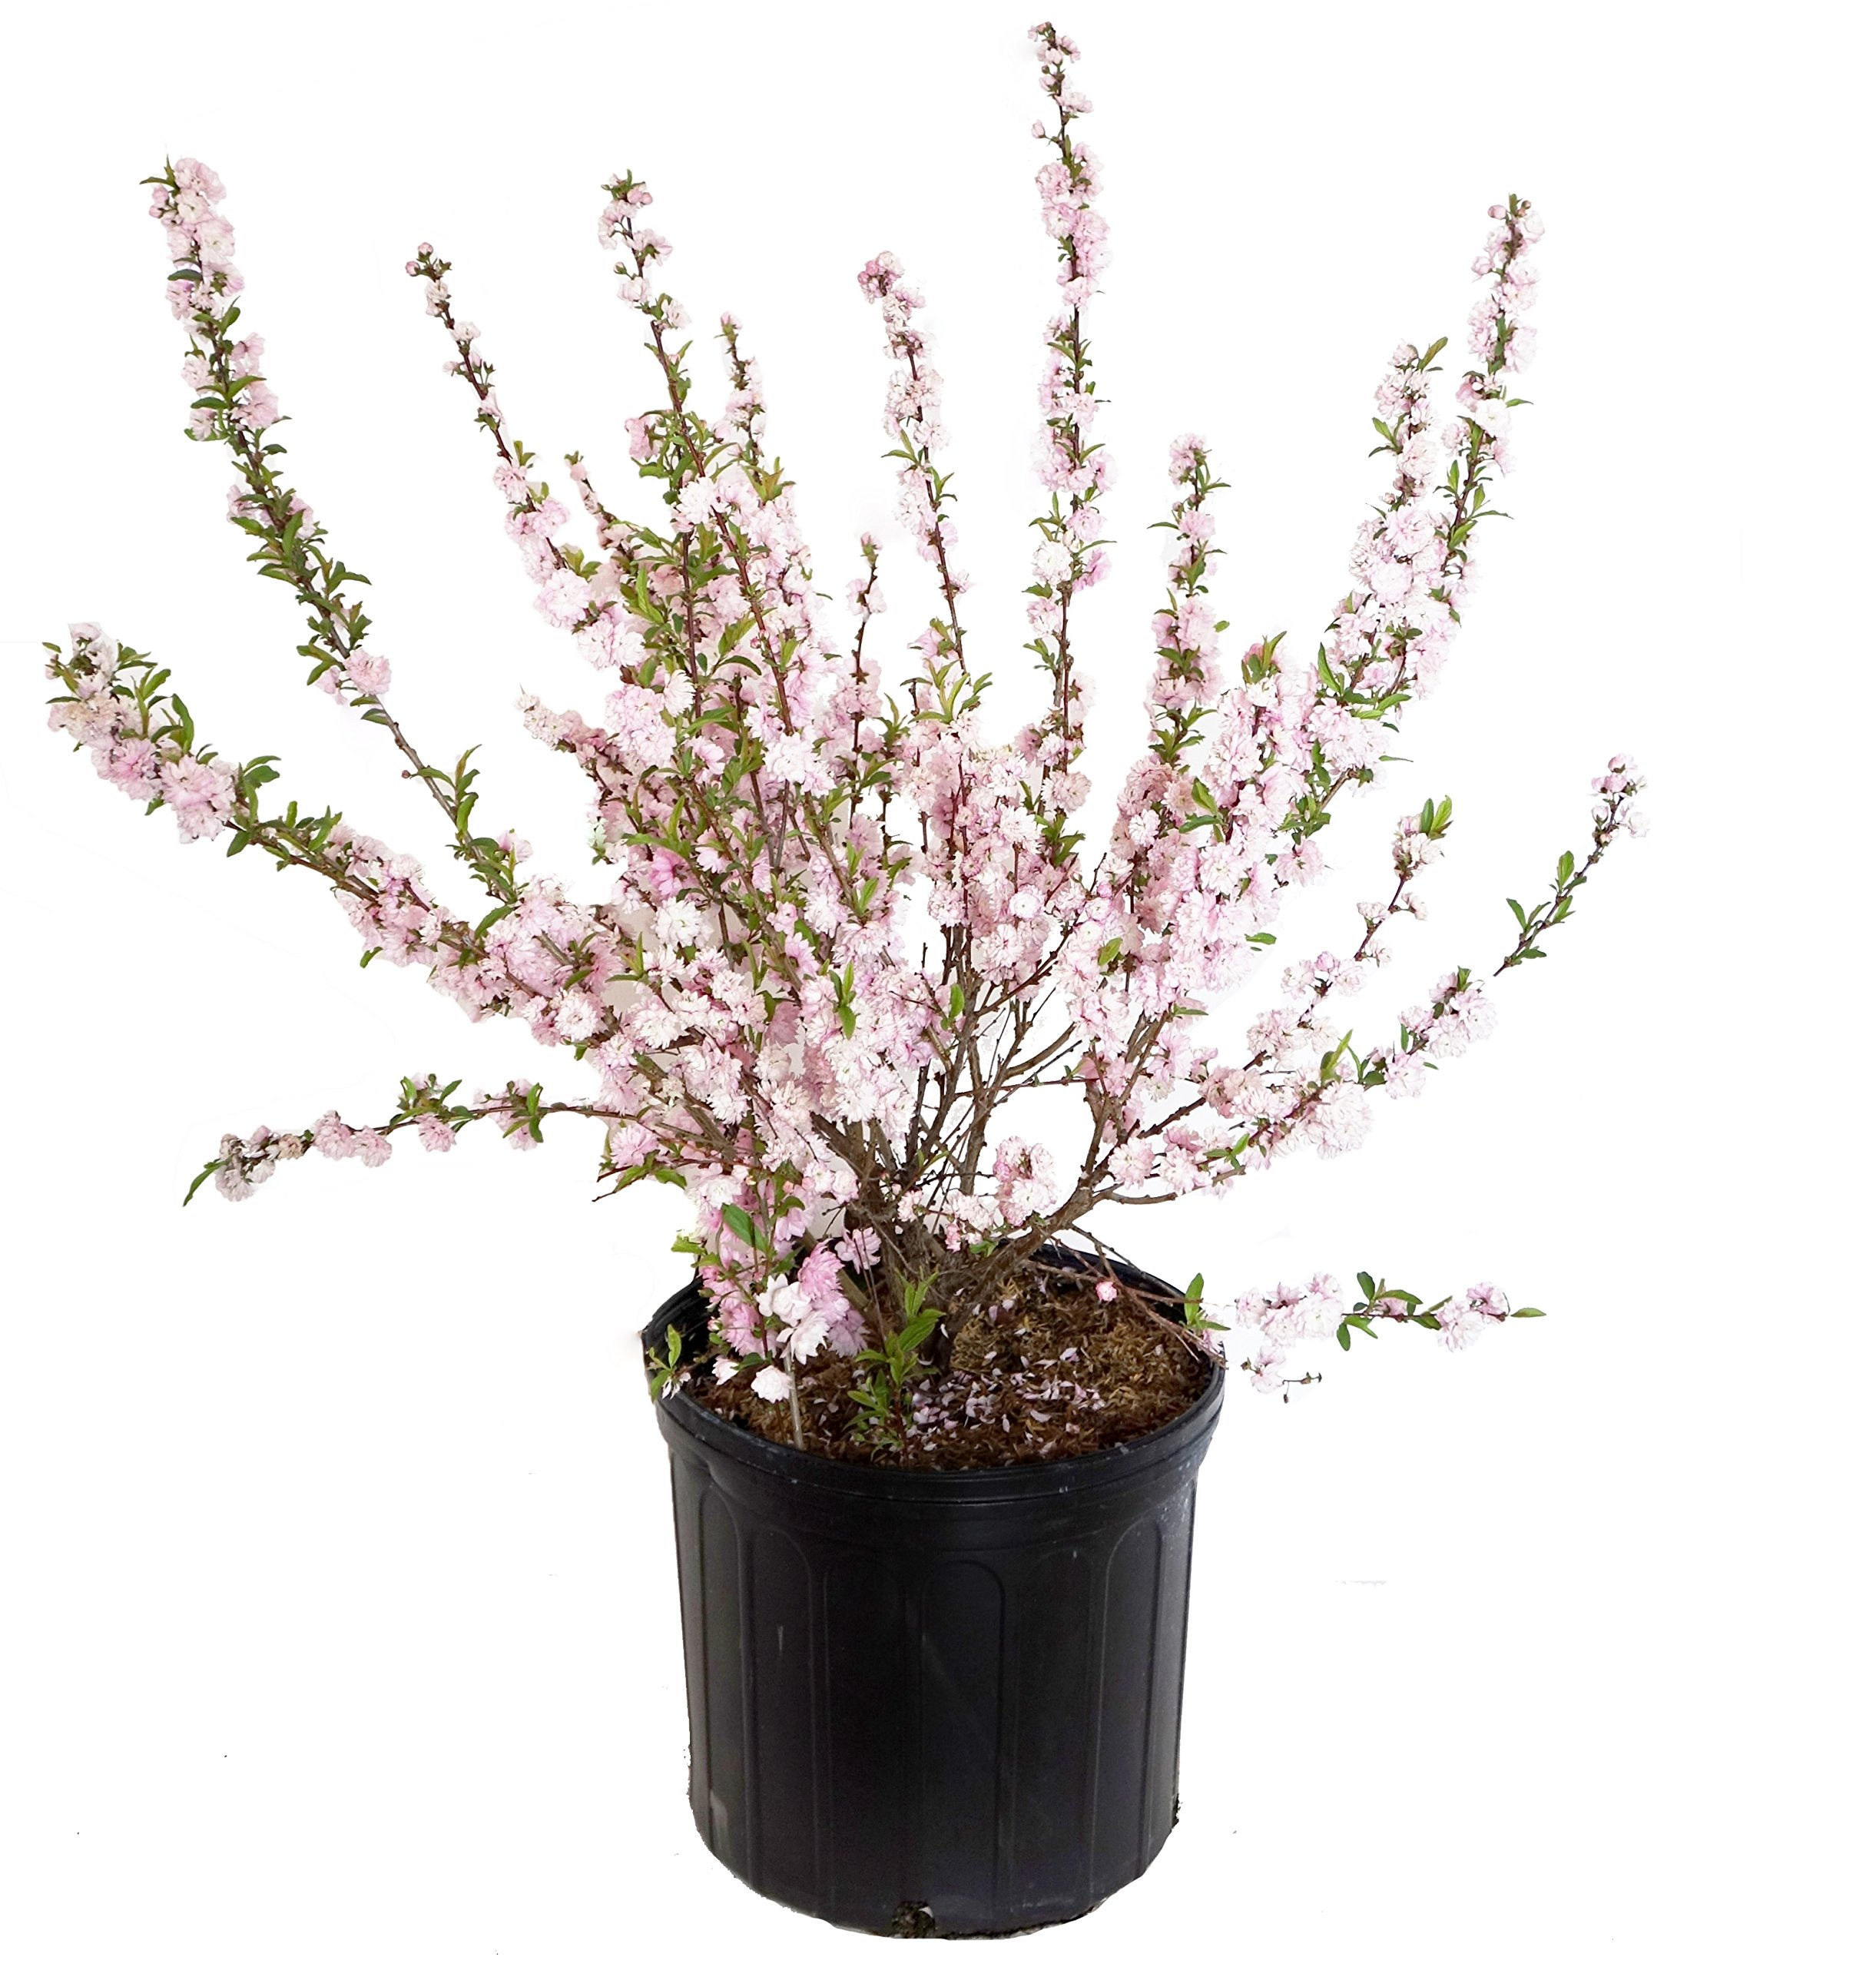 Prunus glandulosa 'Rosea' (Pink Flowering Almond) Shrub, 3 - Size Container